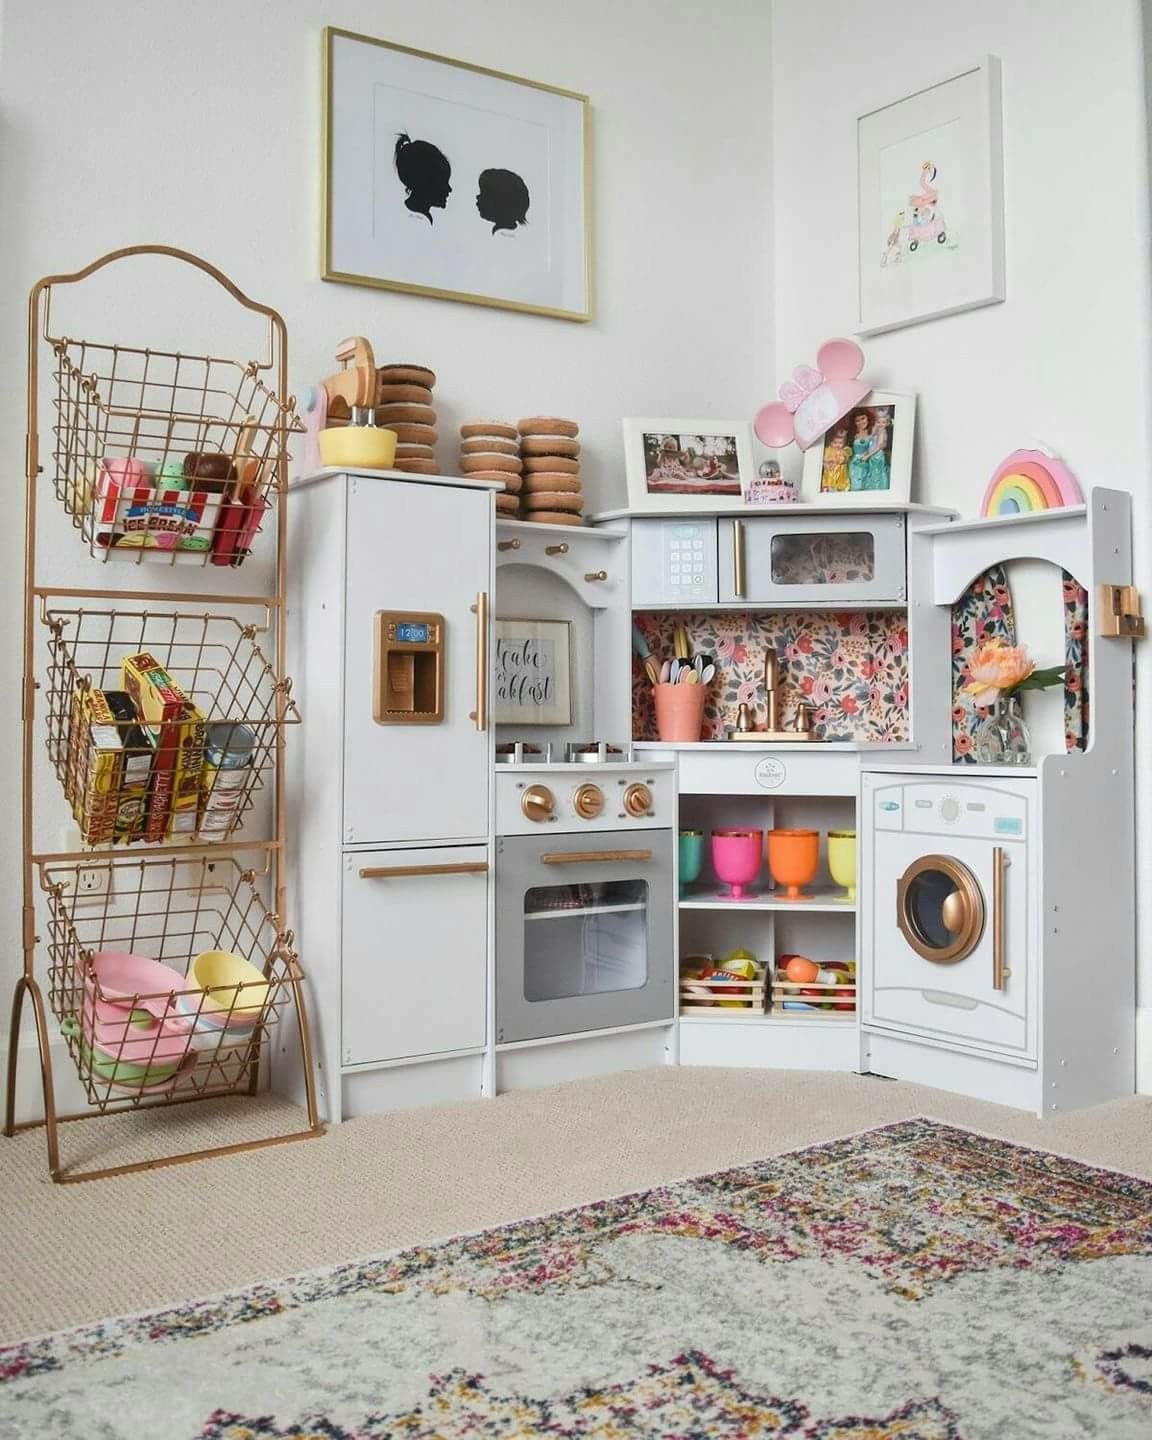 miniature play kitchen and laundry room for little people rh pinterest com